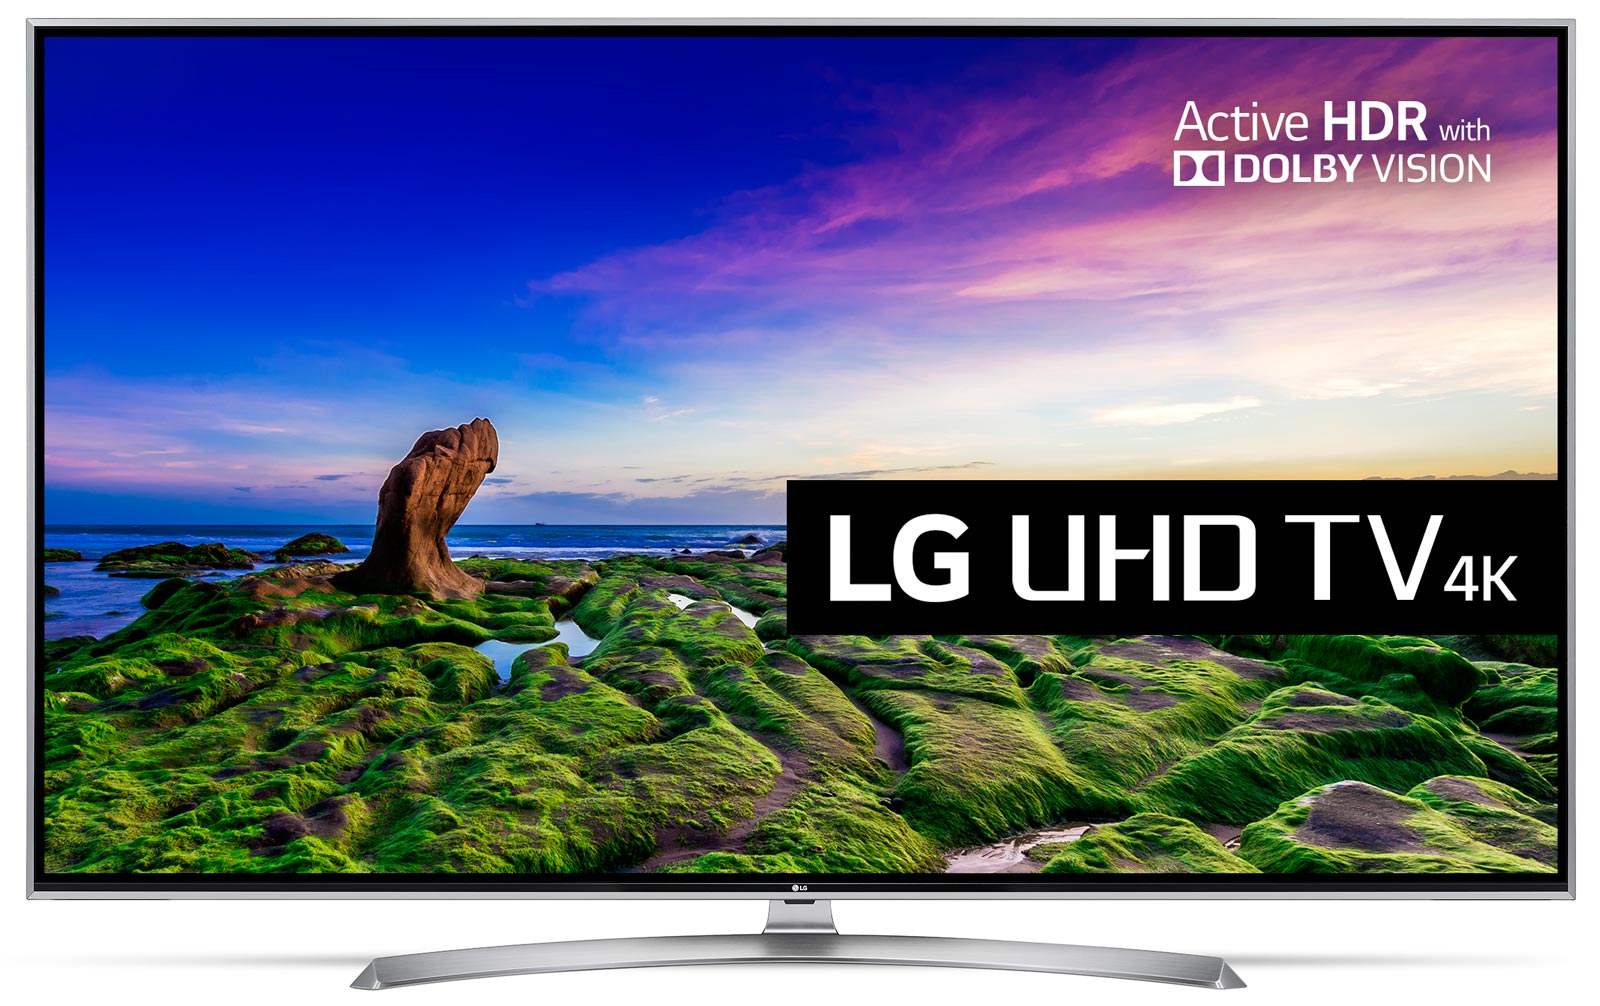 Lg 2017 Tv Line Up Full Overview With Prices Flatpanelshd # Designe De Support De Television